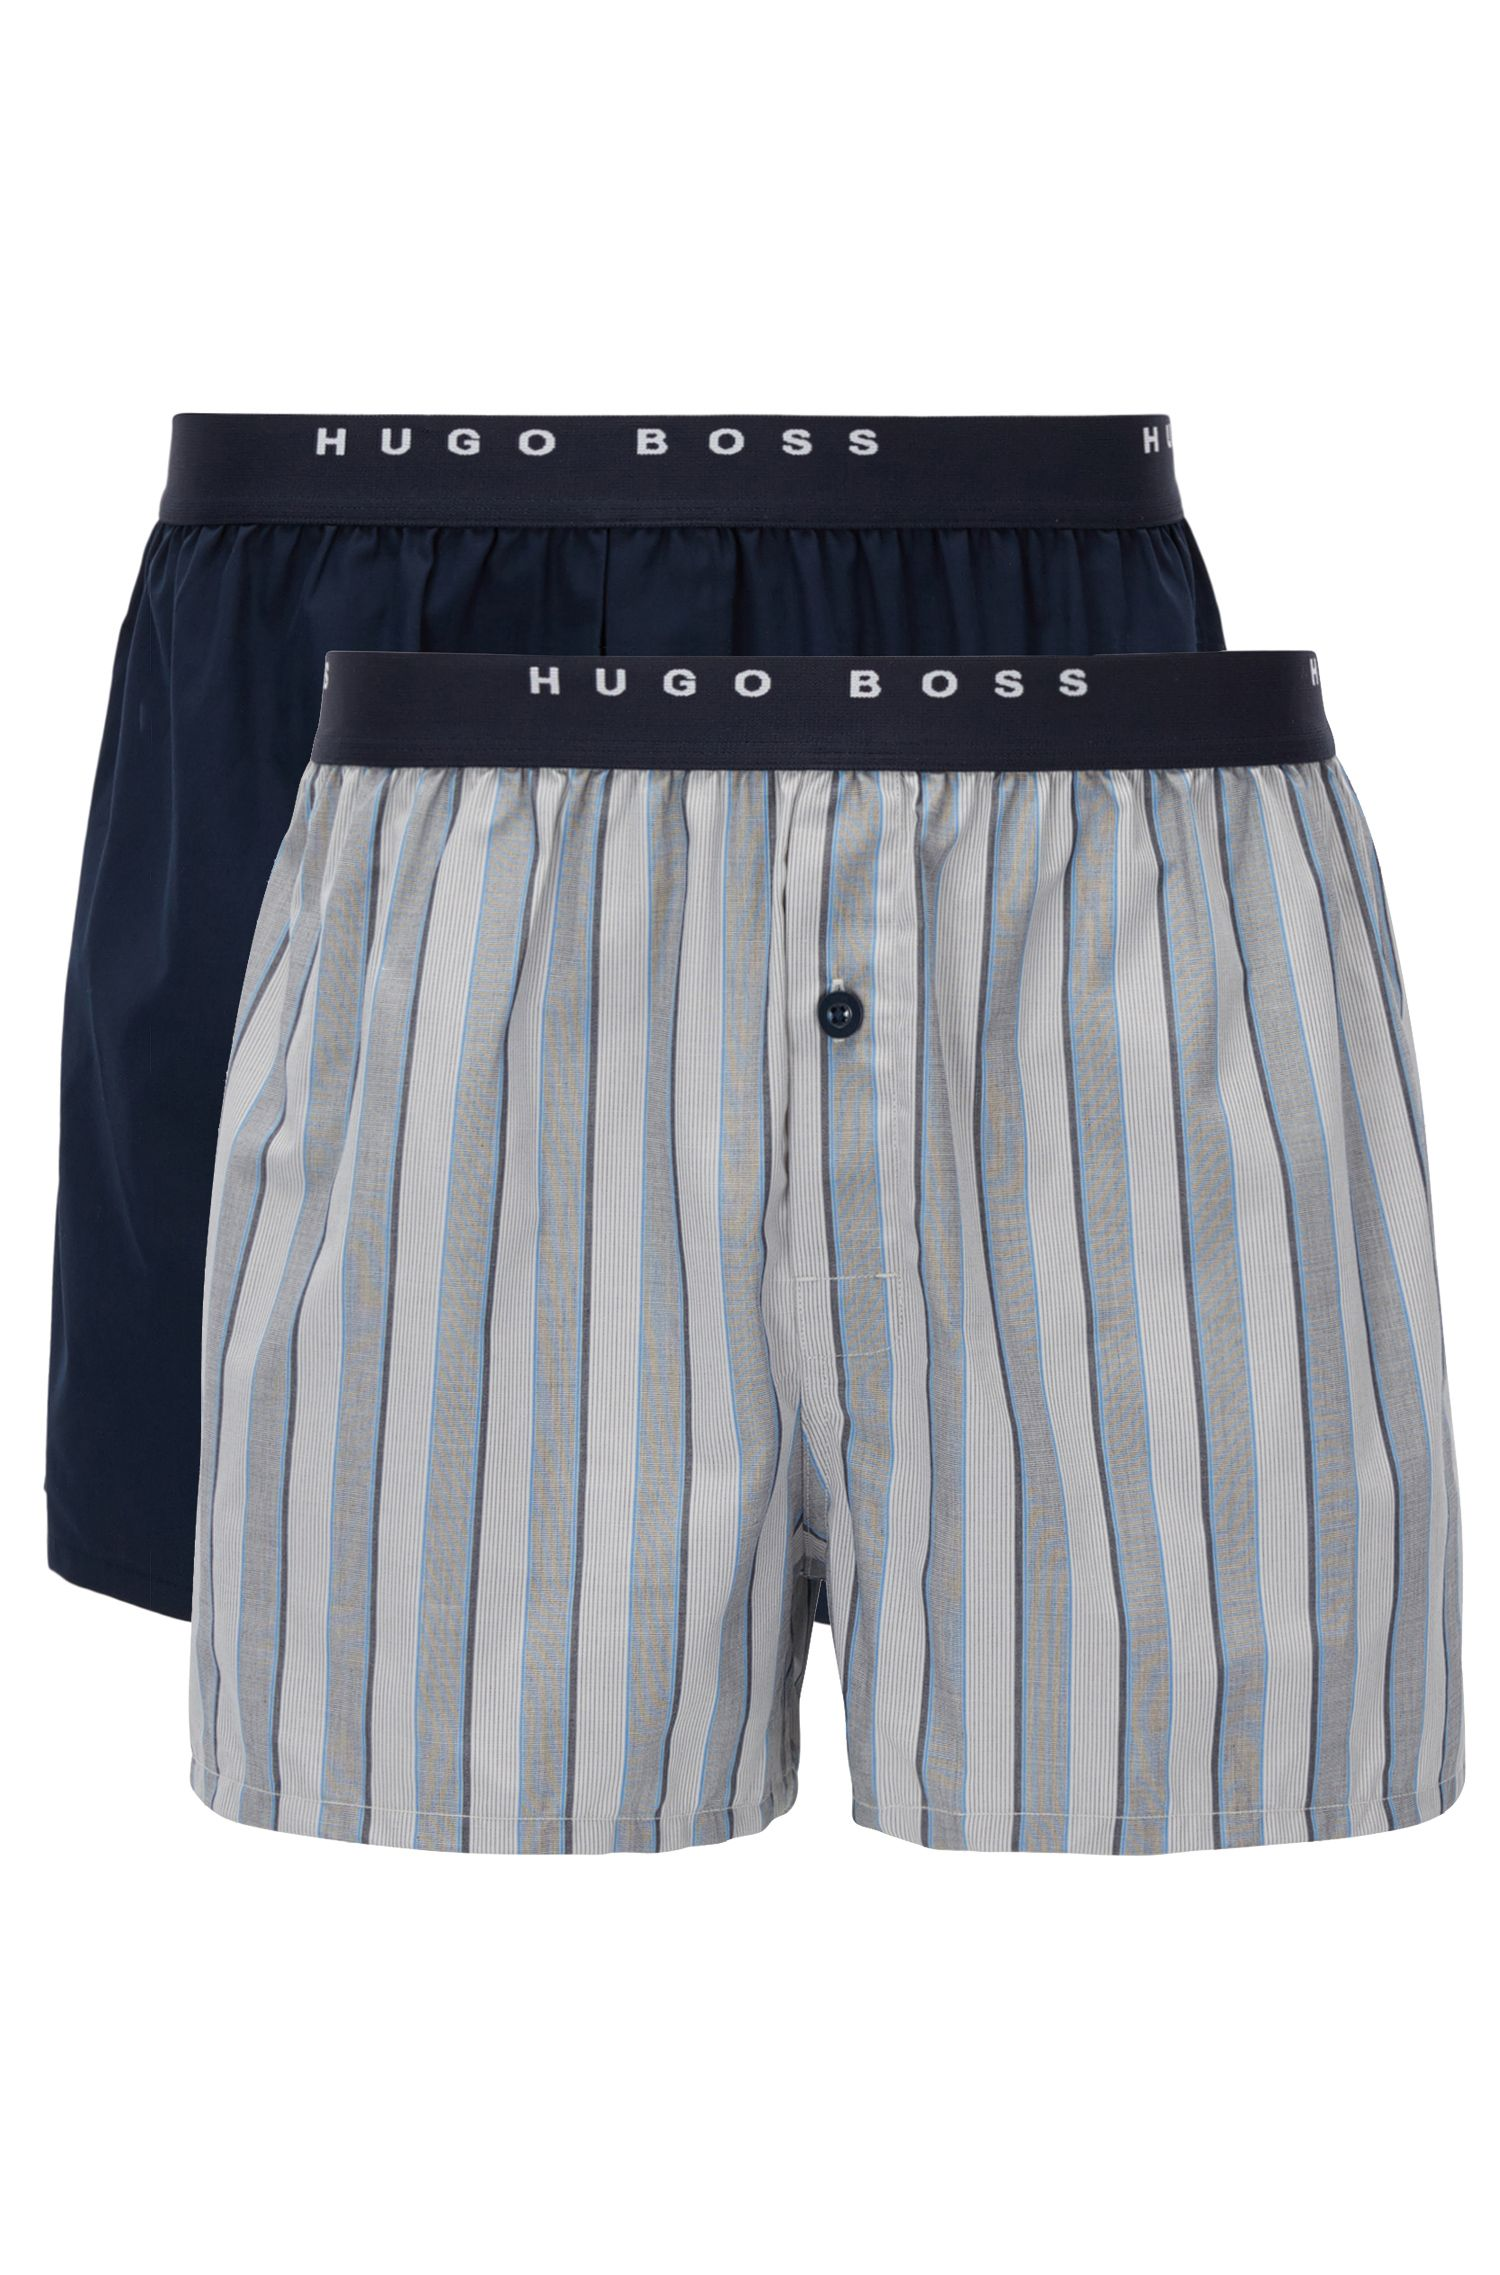 Two-pack of check cotton boxer shorts